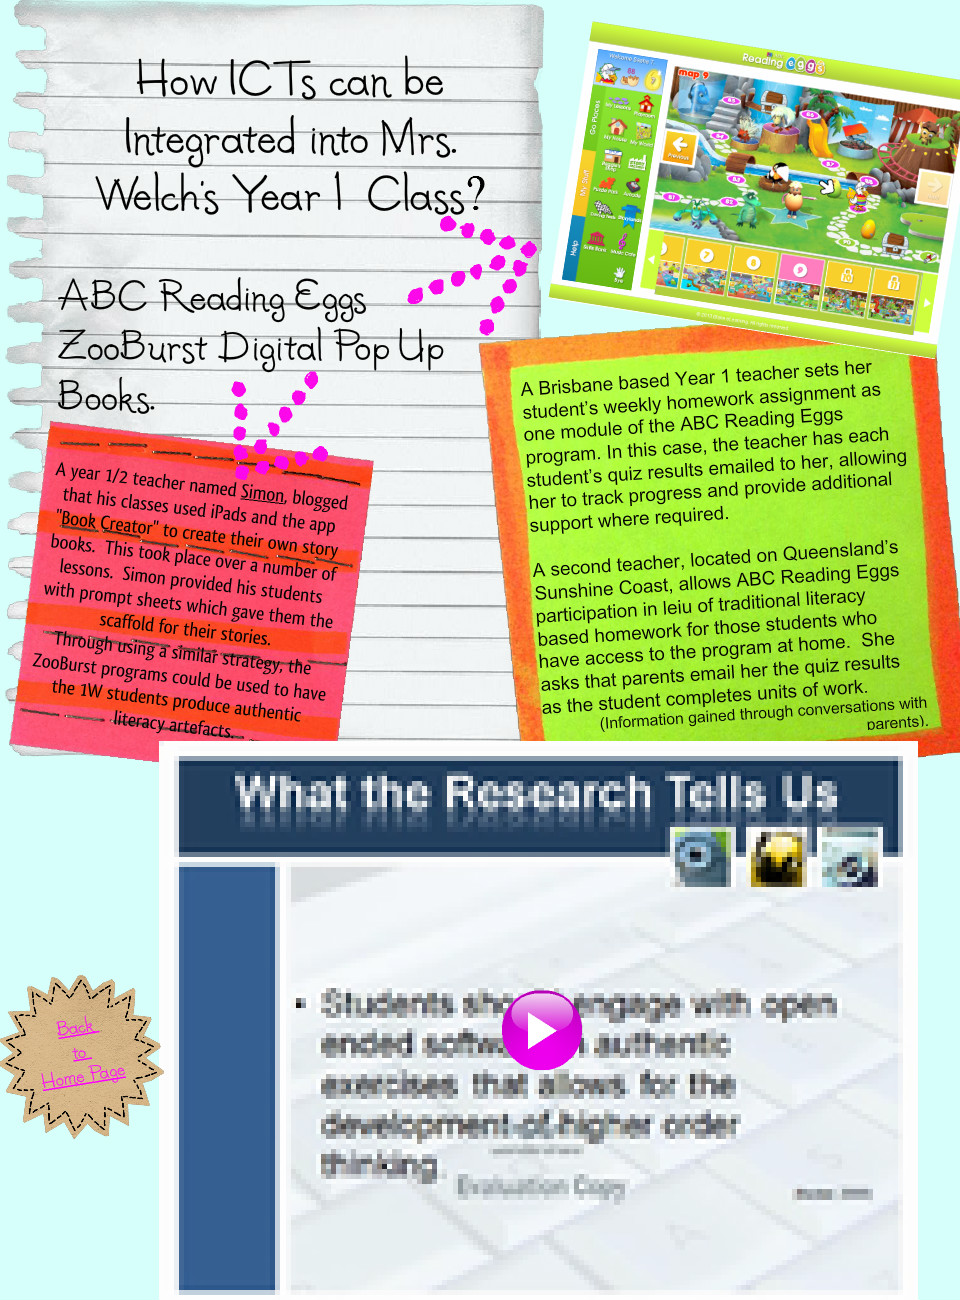 Assignment 1 - How: abc reading eggs, book creator, icts, year 1